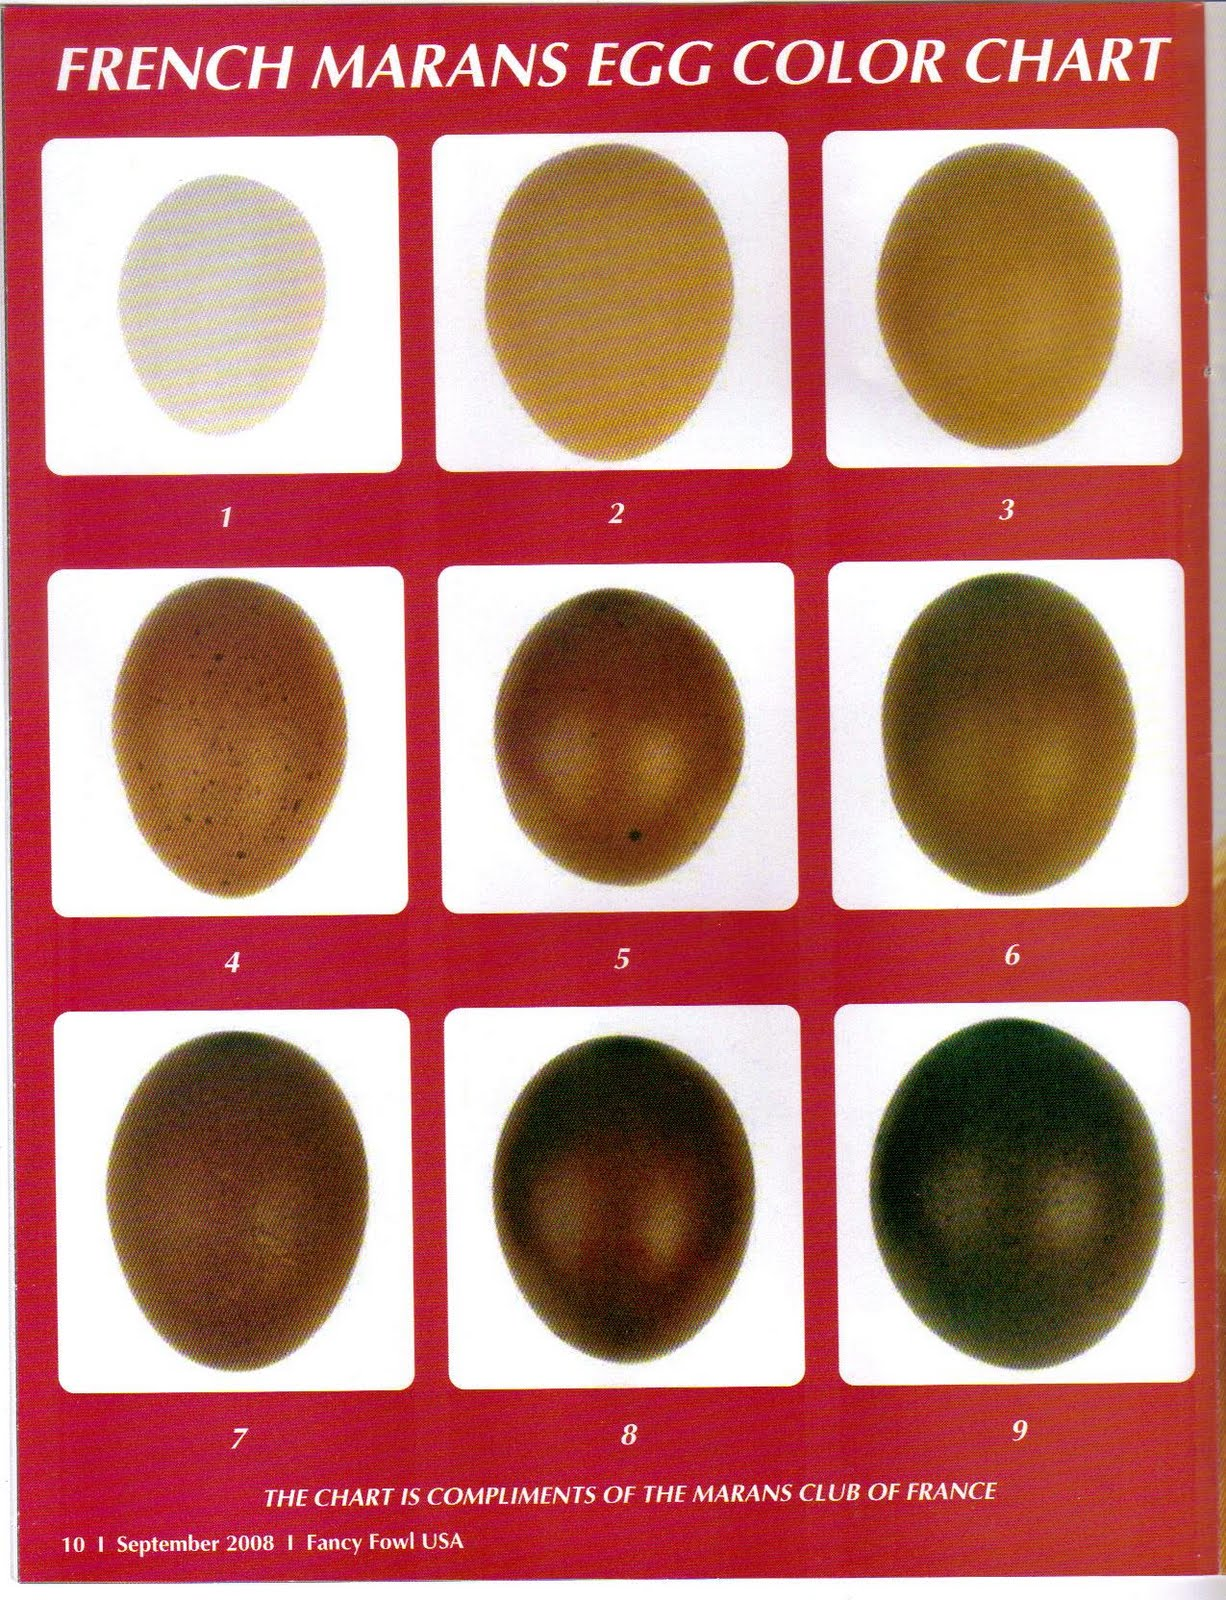 Marans Egg Color Chart Published January 21 2017 At 1226 1600 In